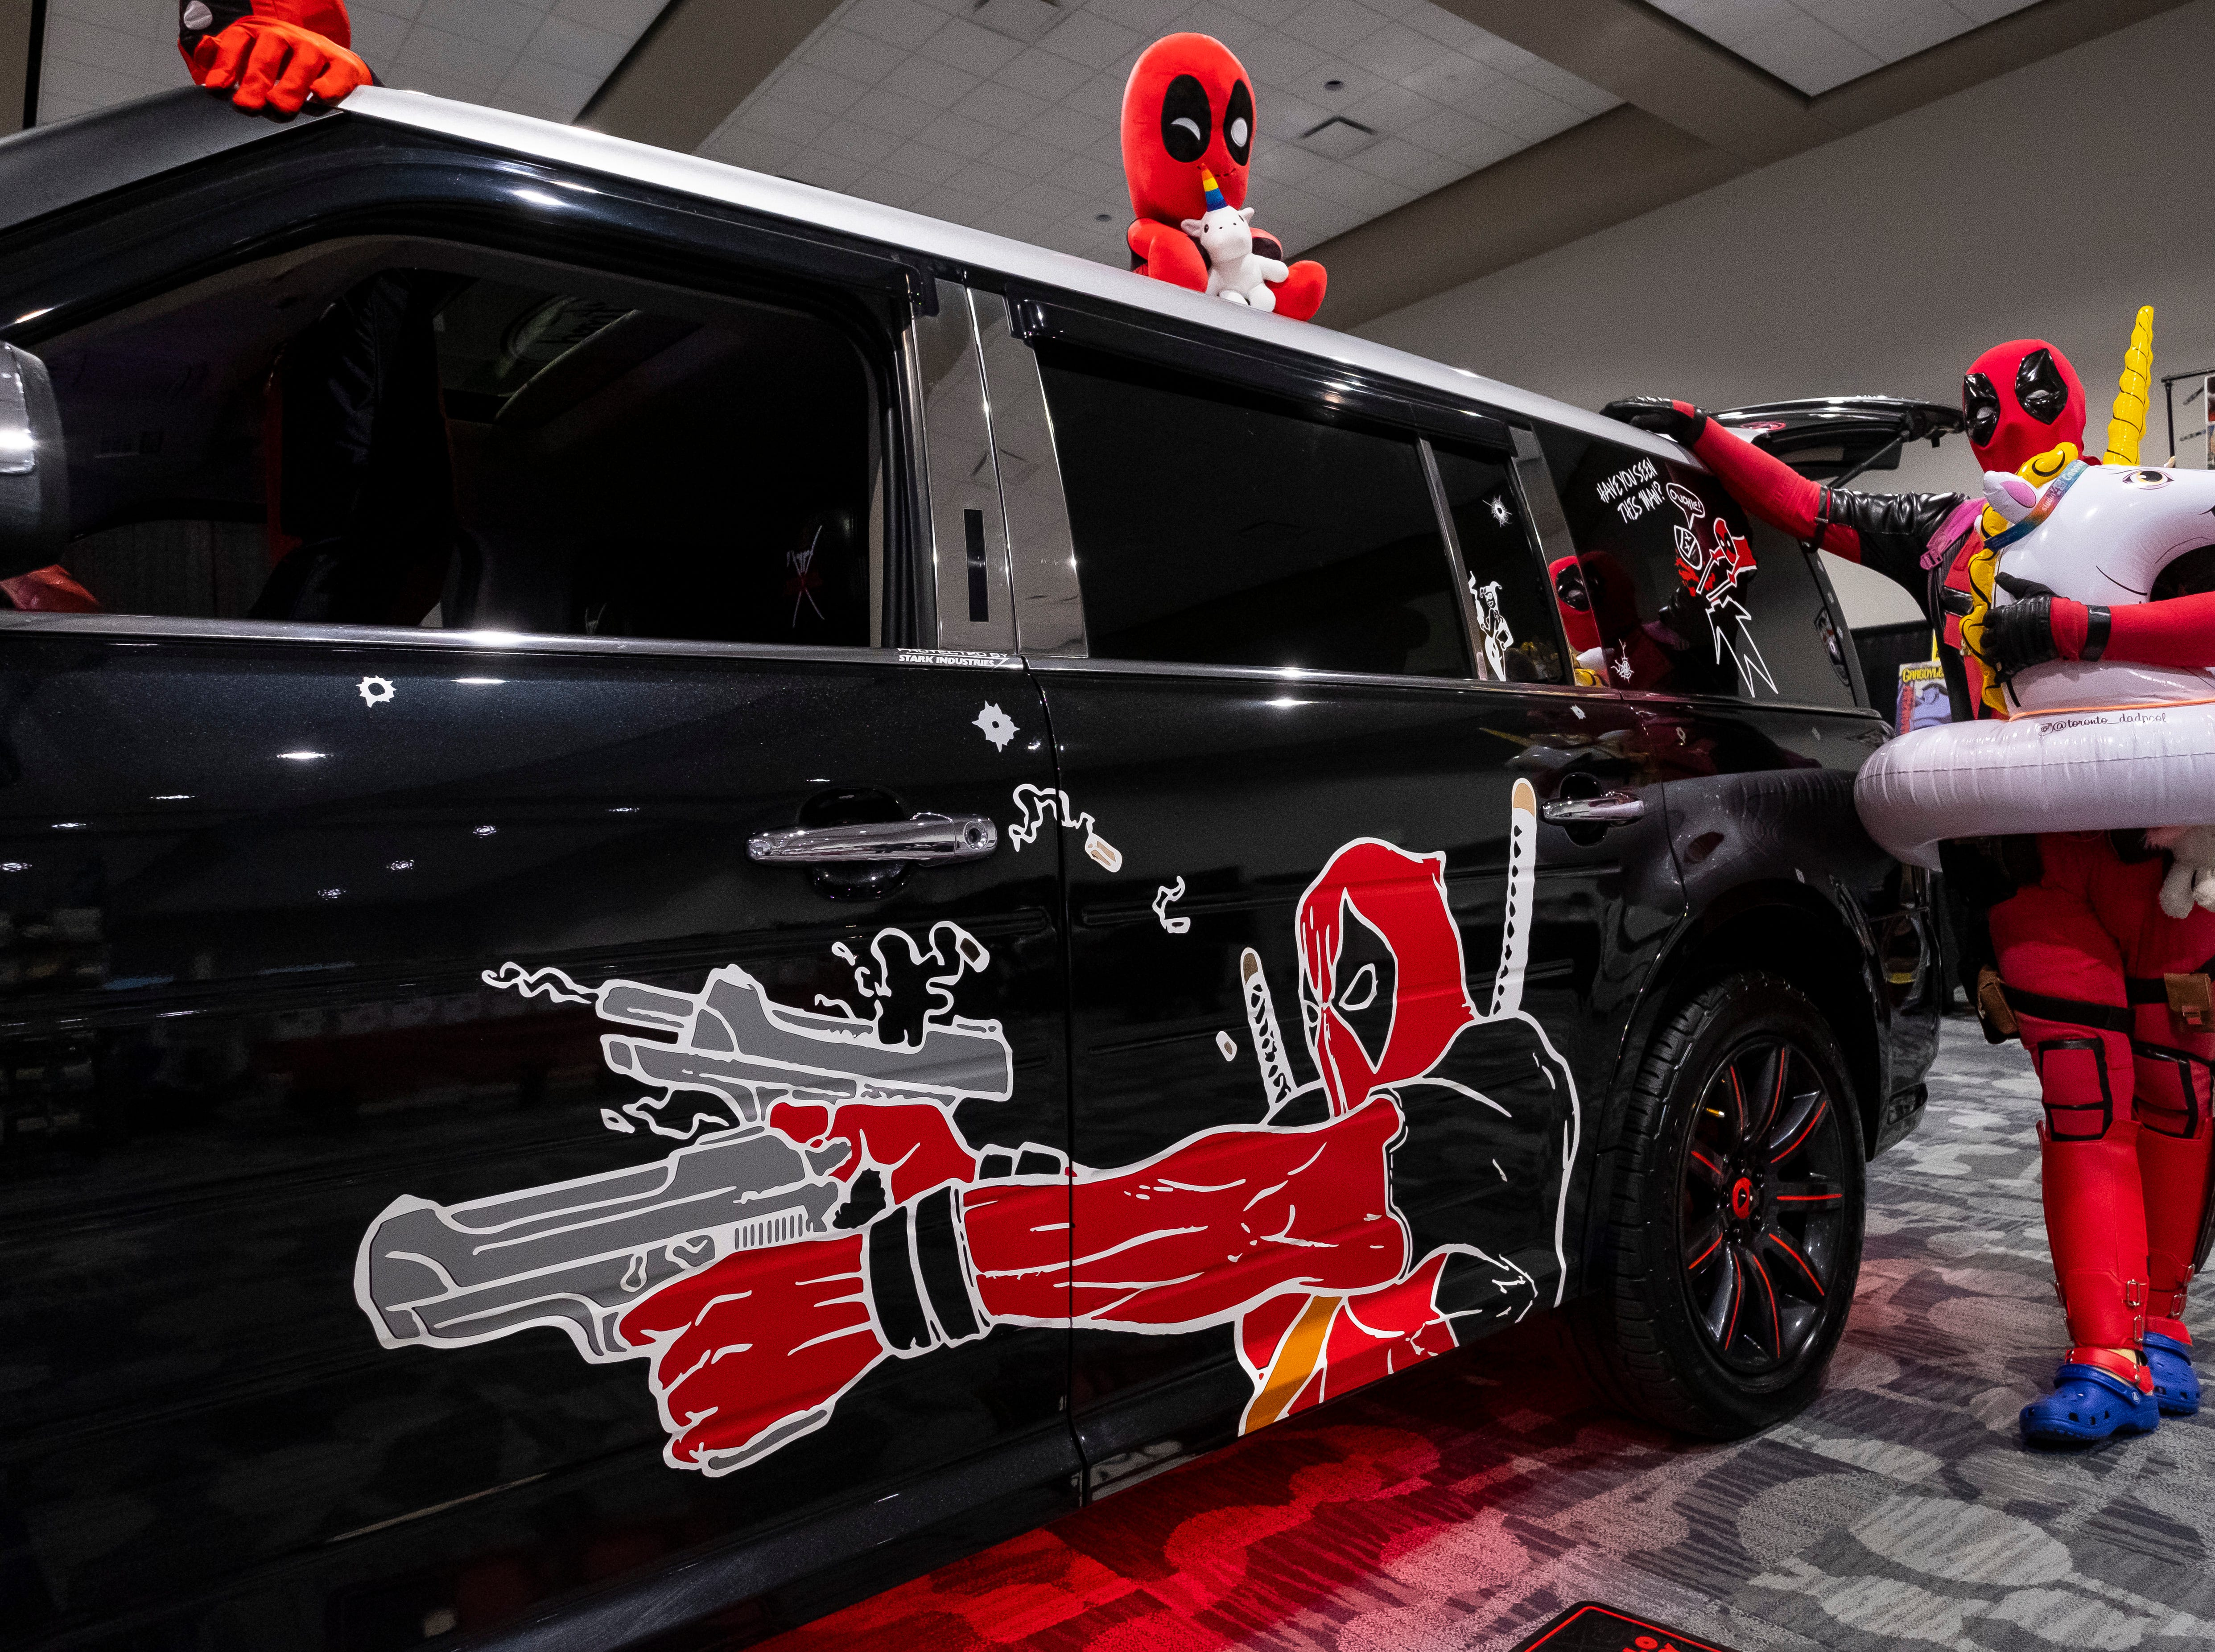 """Trevor Lyn, also known as the Toronto Dadpool, leans against the Dadpoolmobile while dressed as one of his variants of Deadpool Saturday, March 30, 2019 during Blue Water International Comic-Con. Lyn says he began cosplaying as Deadpool after visiting Toronto Comic Con with his son in 2016, where he met a man dressed as Deadpool. """"He was sitting on the floor drawing like Deadpool does, with crayons and paper, and (my son) sat with the guy … I just watched, and I saw the people coming up, getting pictures with them, and it looked like a lot of fun, so I just said I want to do it."""""""